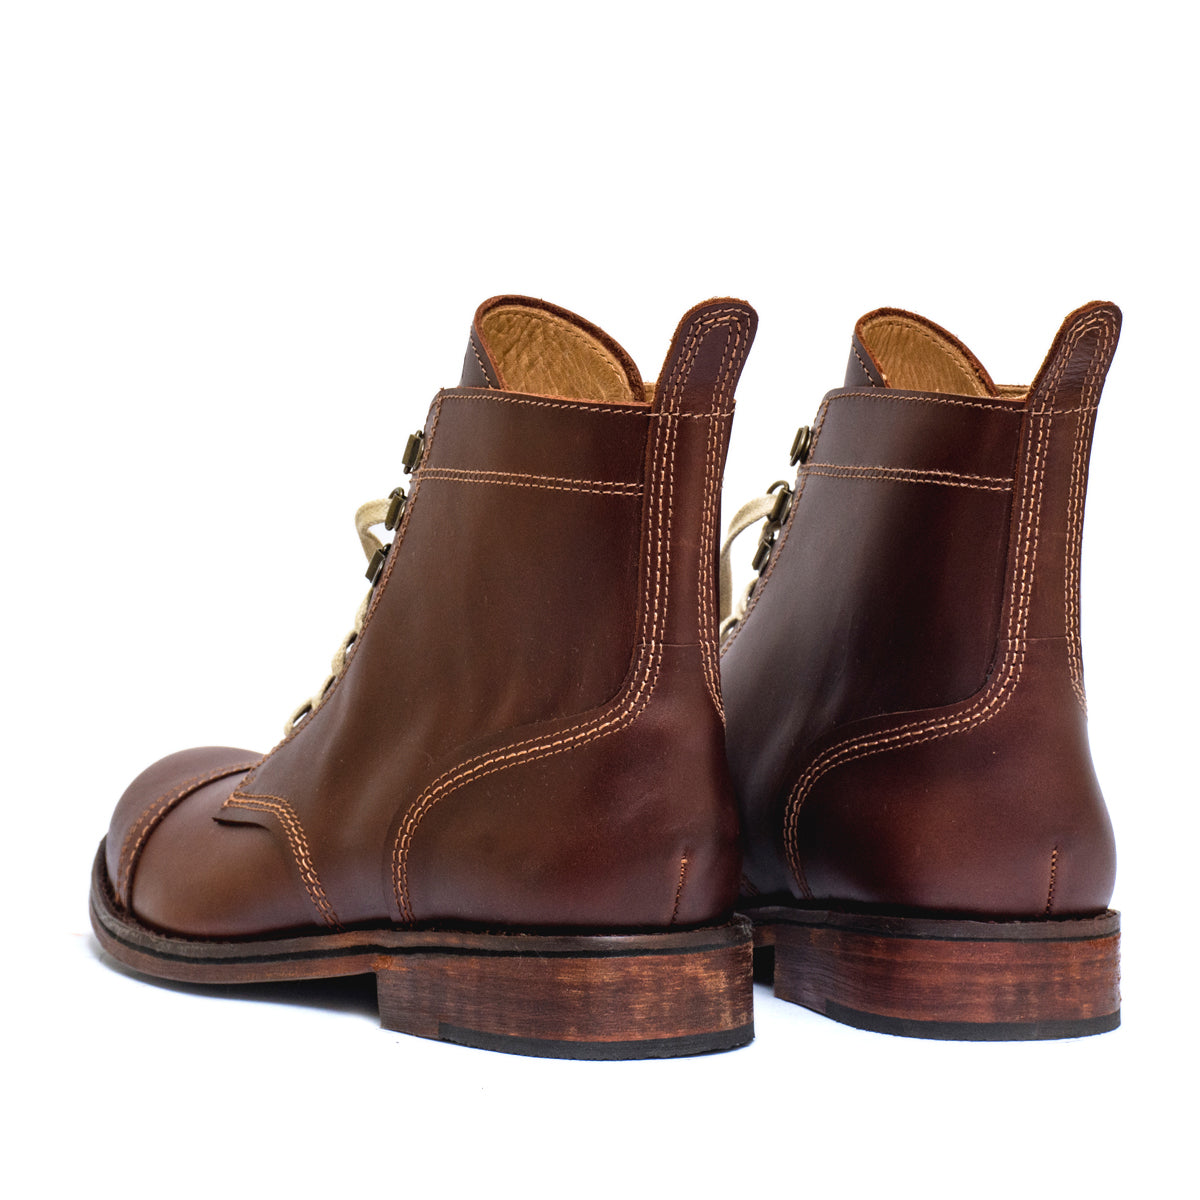 0c9e254345a Master Classics - leather boots - CAPITA boots and shoes